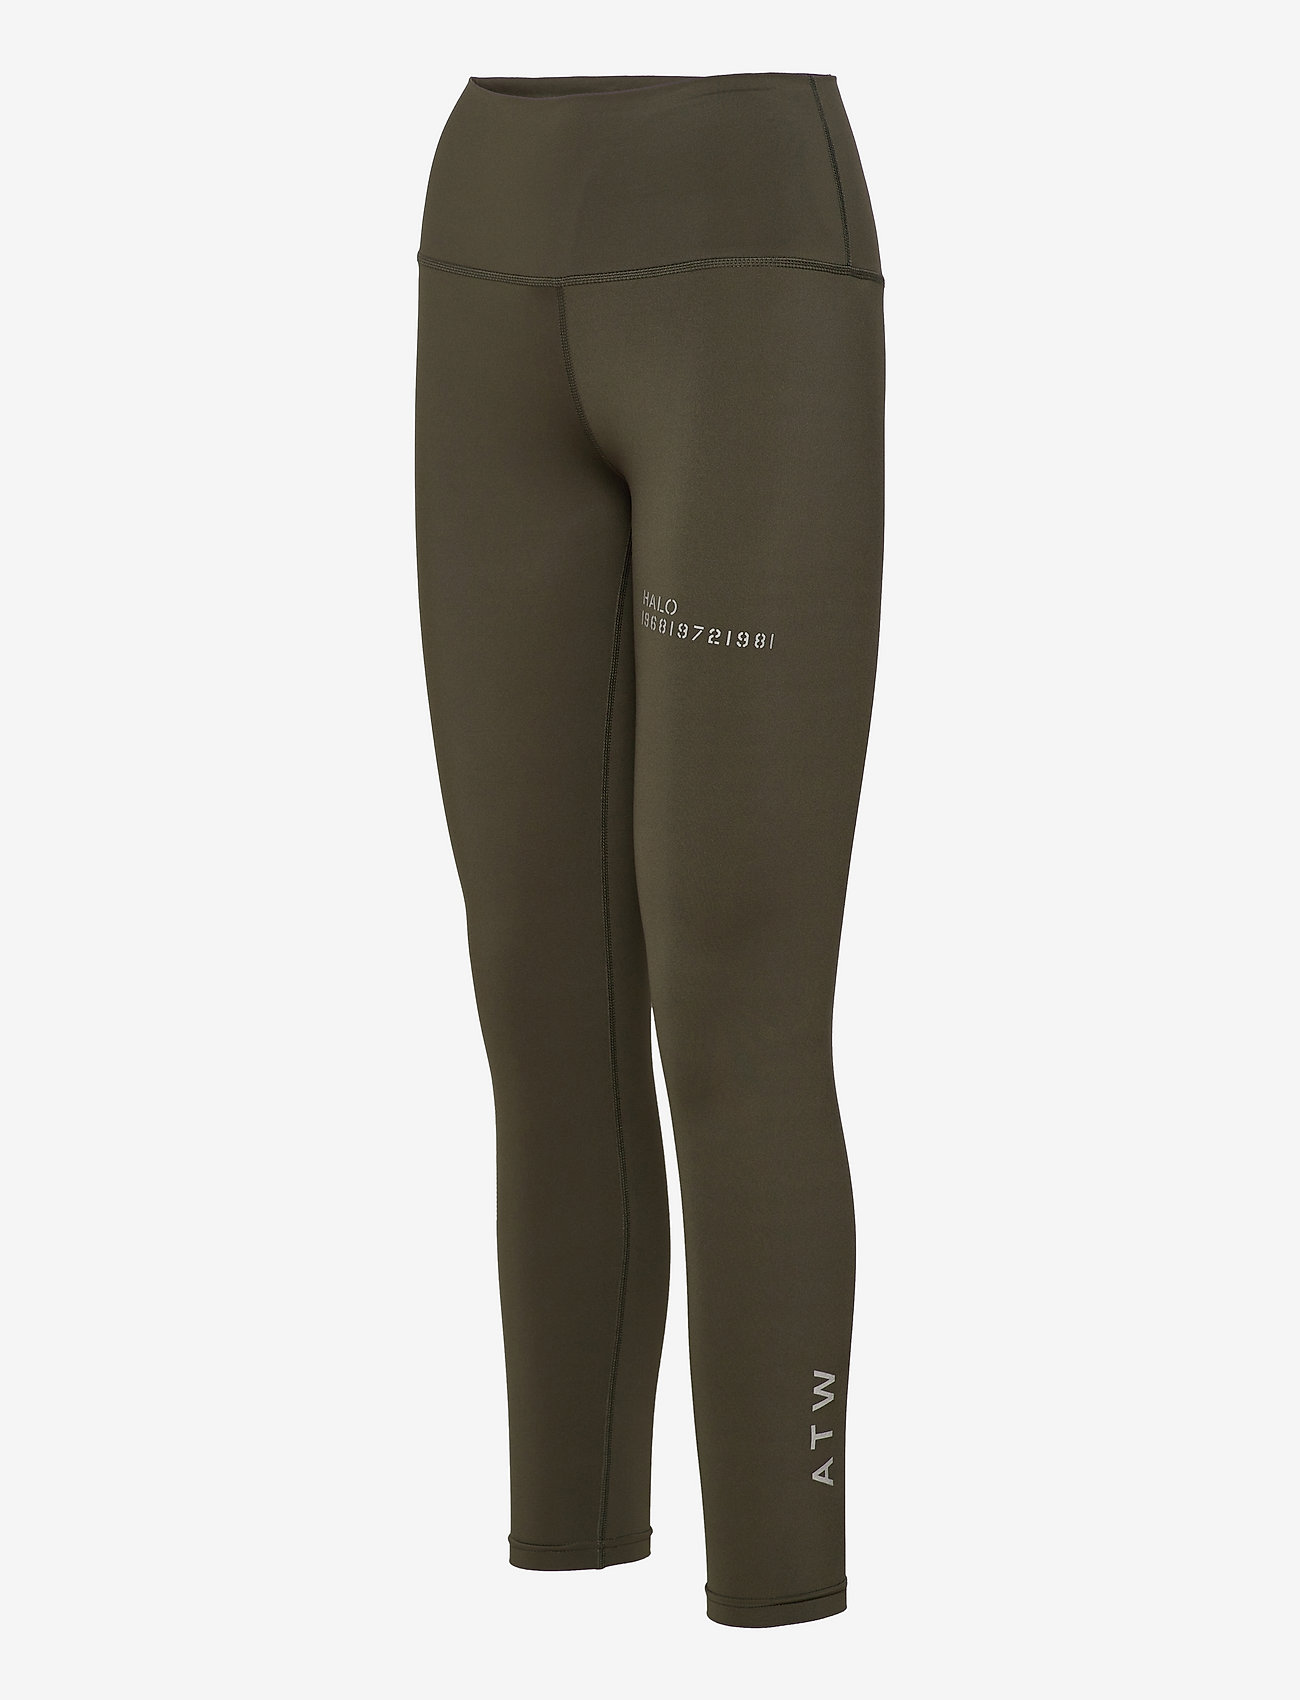 HALO - HALO WOMENS HIGHRISE TIGHTS - tights & shorts - winter moss - 2